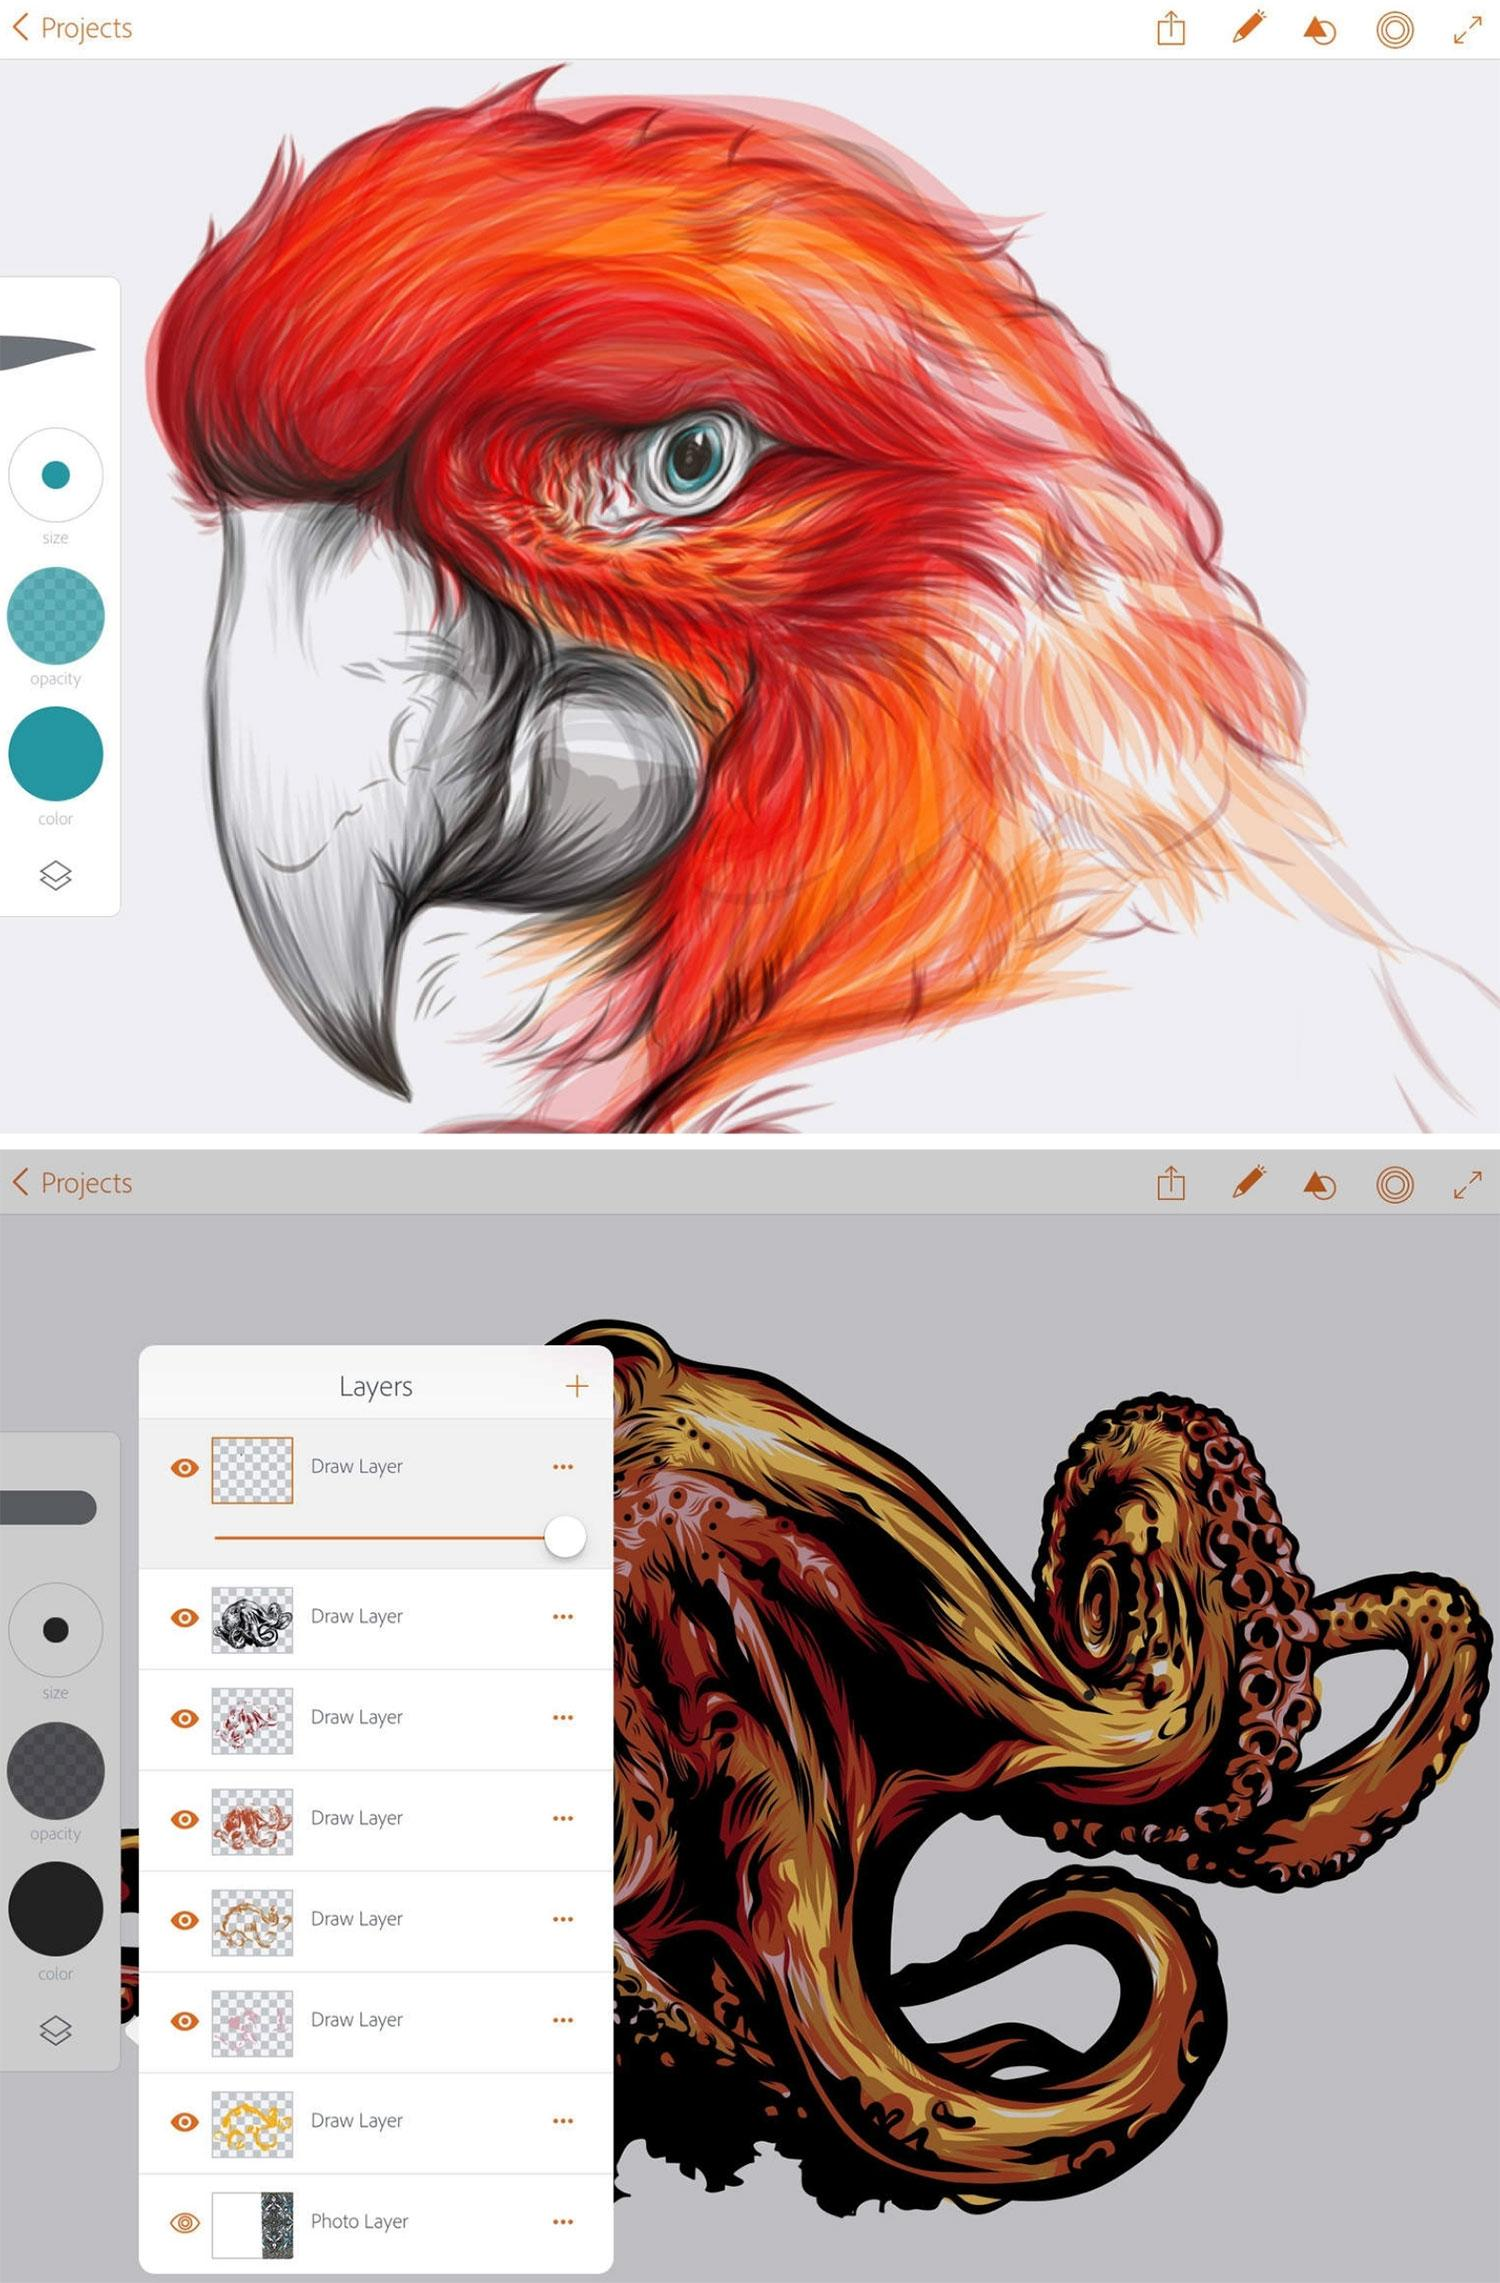 Best Graphic Design Apps for Android - Digital Arts